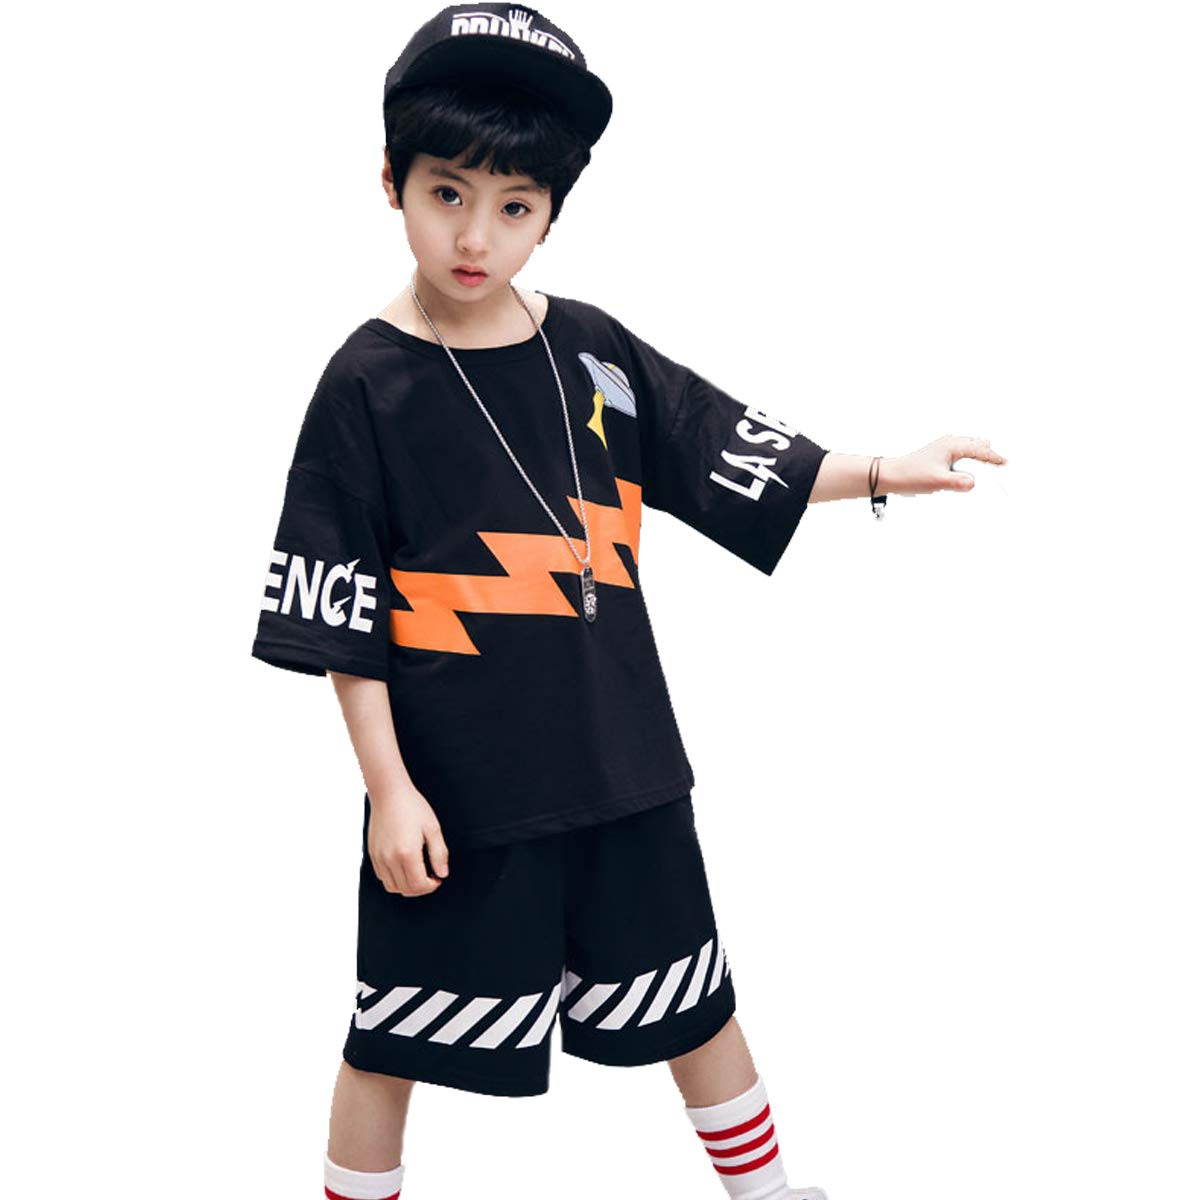 NABER Kids Boys Cool Hip-hop Dance T-Shirt /& Shorts Set Outfit Age 5-14 Years